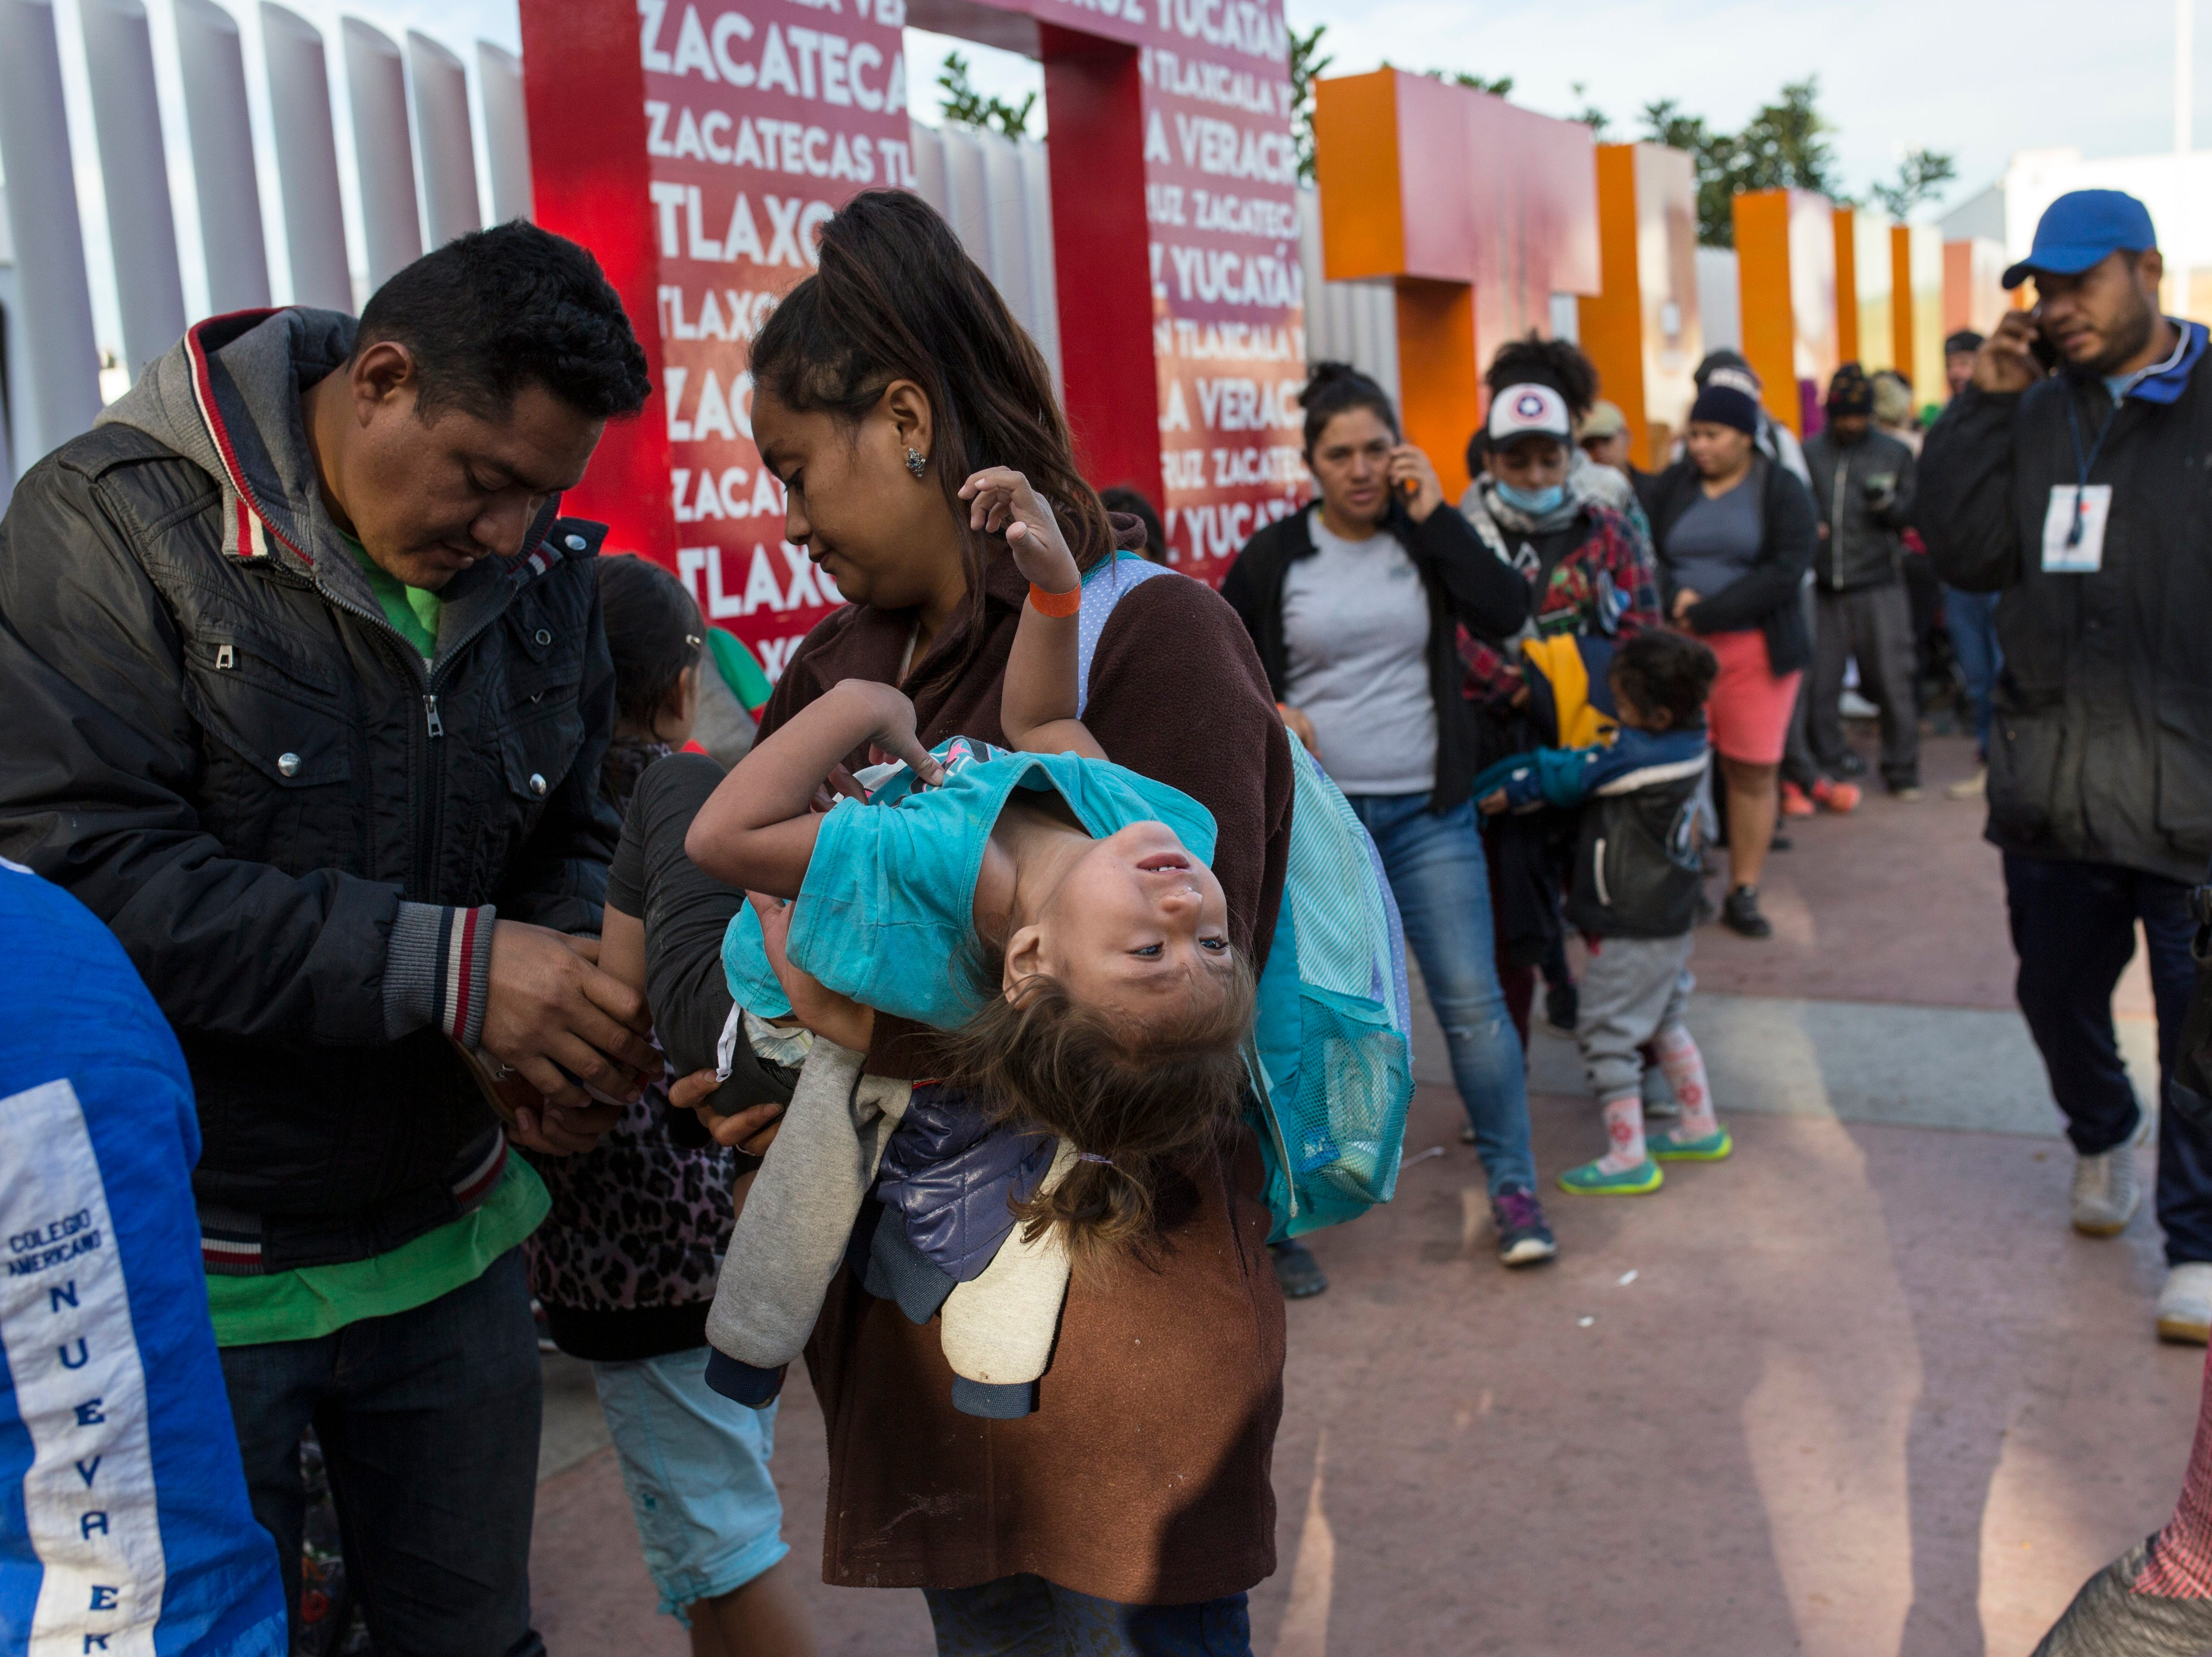 Sairy Hueso, part of the Central American migrant caravan, carries her daughter Etzabe Ponce, as she stands next to her husband while waiting in line to receive a number as part of the process to apply for asylum in the United States, at the border in Tijuana, Mexico Tijuana, Mexico, Friday, Nov. 16, 2018.